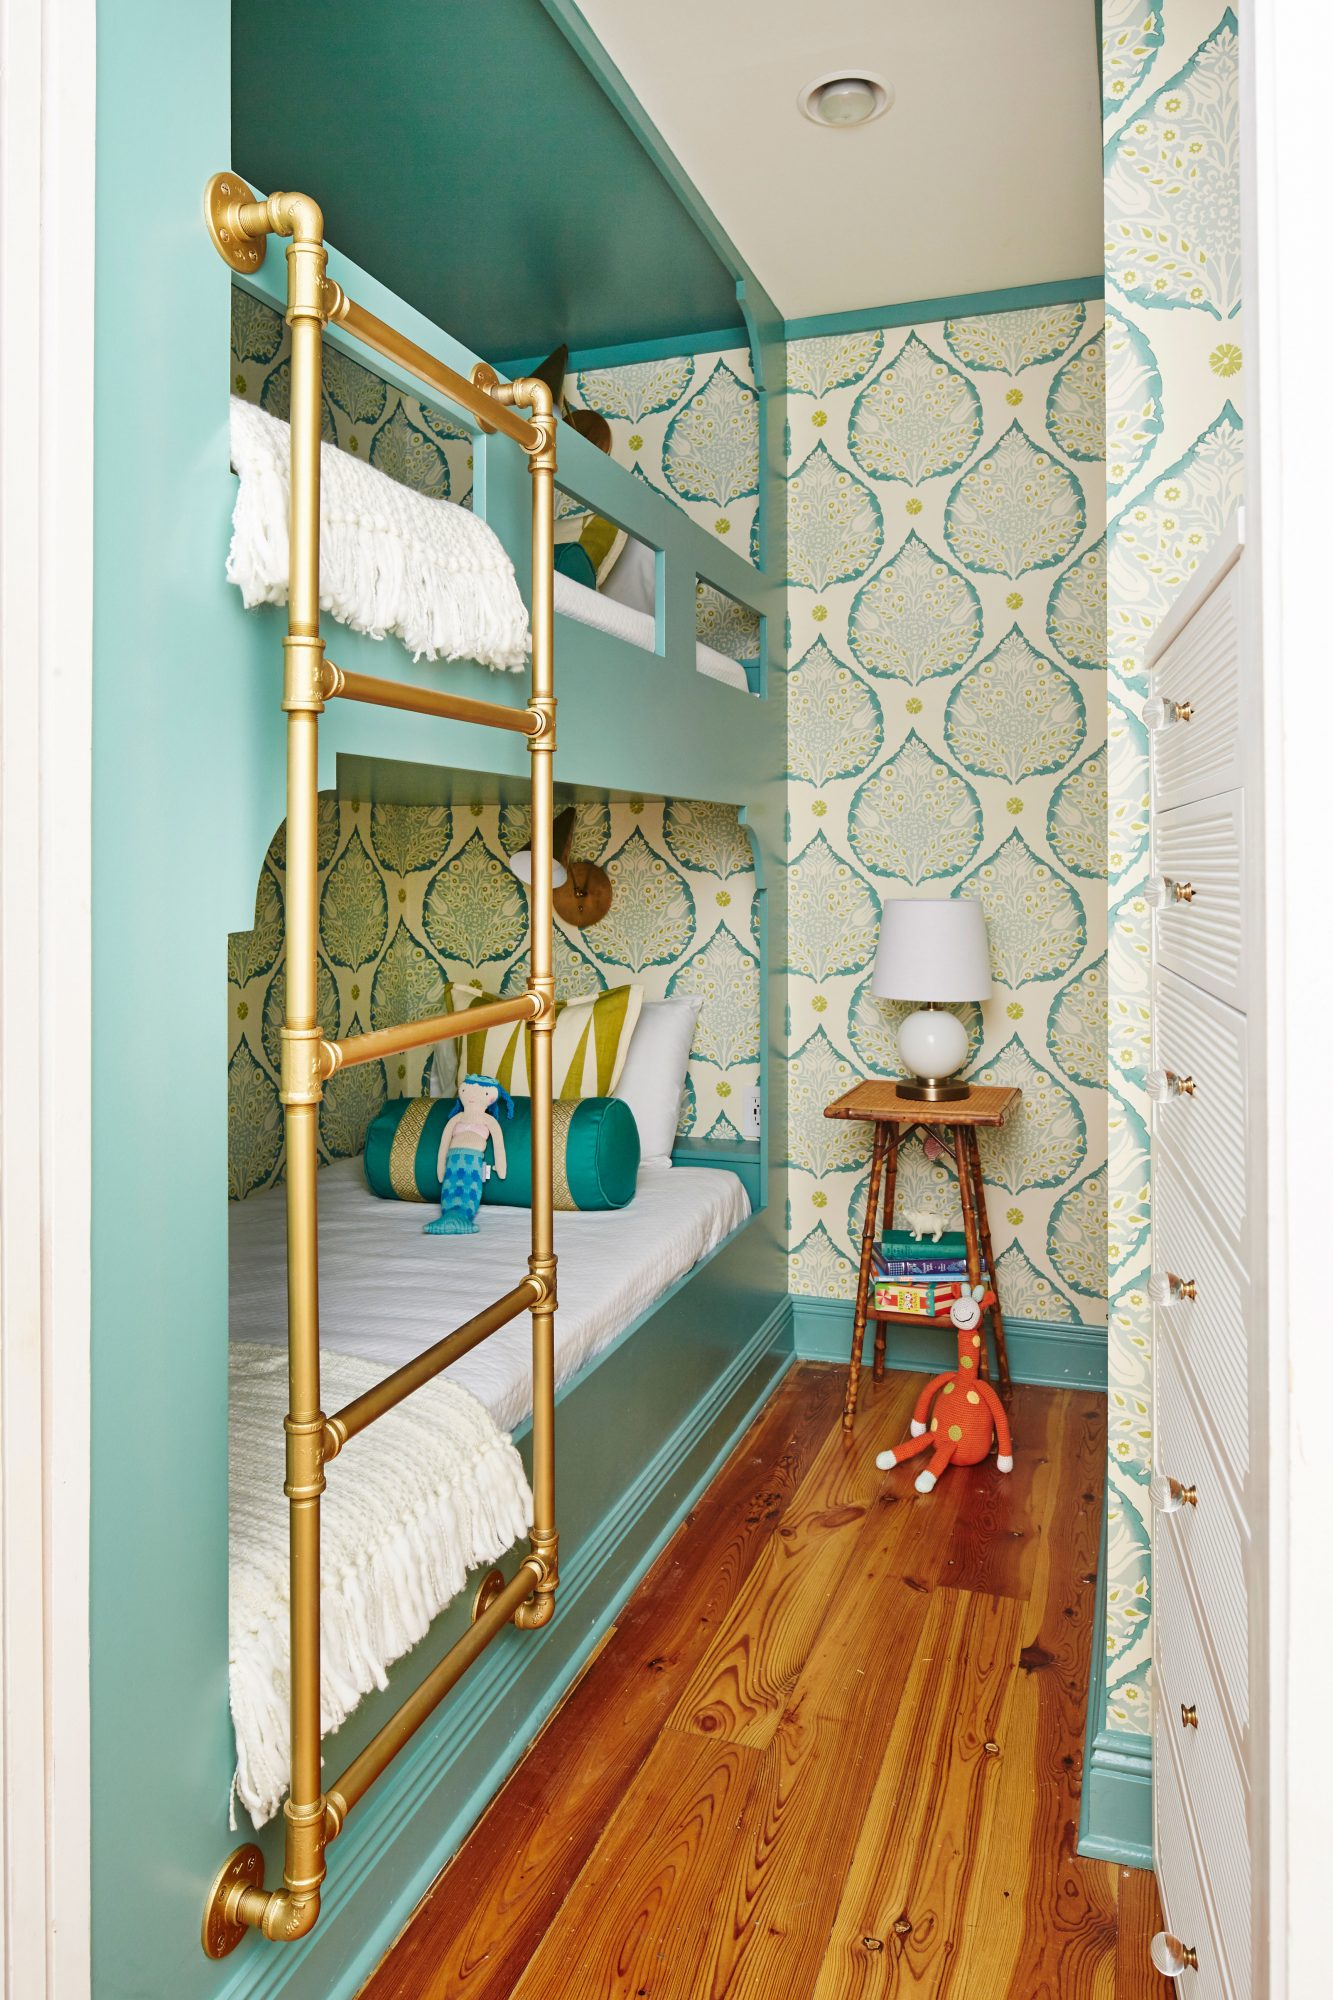 Get the Blues: Composed by Sherwin-Williams                                        In this Rosemary Beach condo, dynamite design transformed a Rosemary Beach condo's weak spot into a kid-friendly win. Coastal Living Style Director Lindsey Ellis Beatty outfitted the teeny, seven-feet-by-six-feet space with custom millwork fit to the room's dimensions, then painted and lacquered the bunks in a zippy aqua to give the room a fun, hideaway feel.